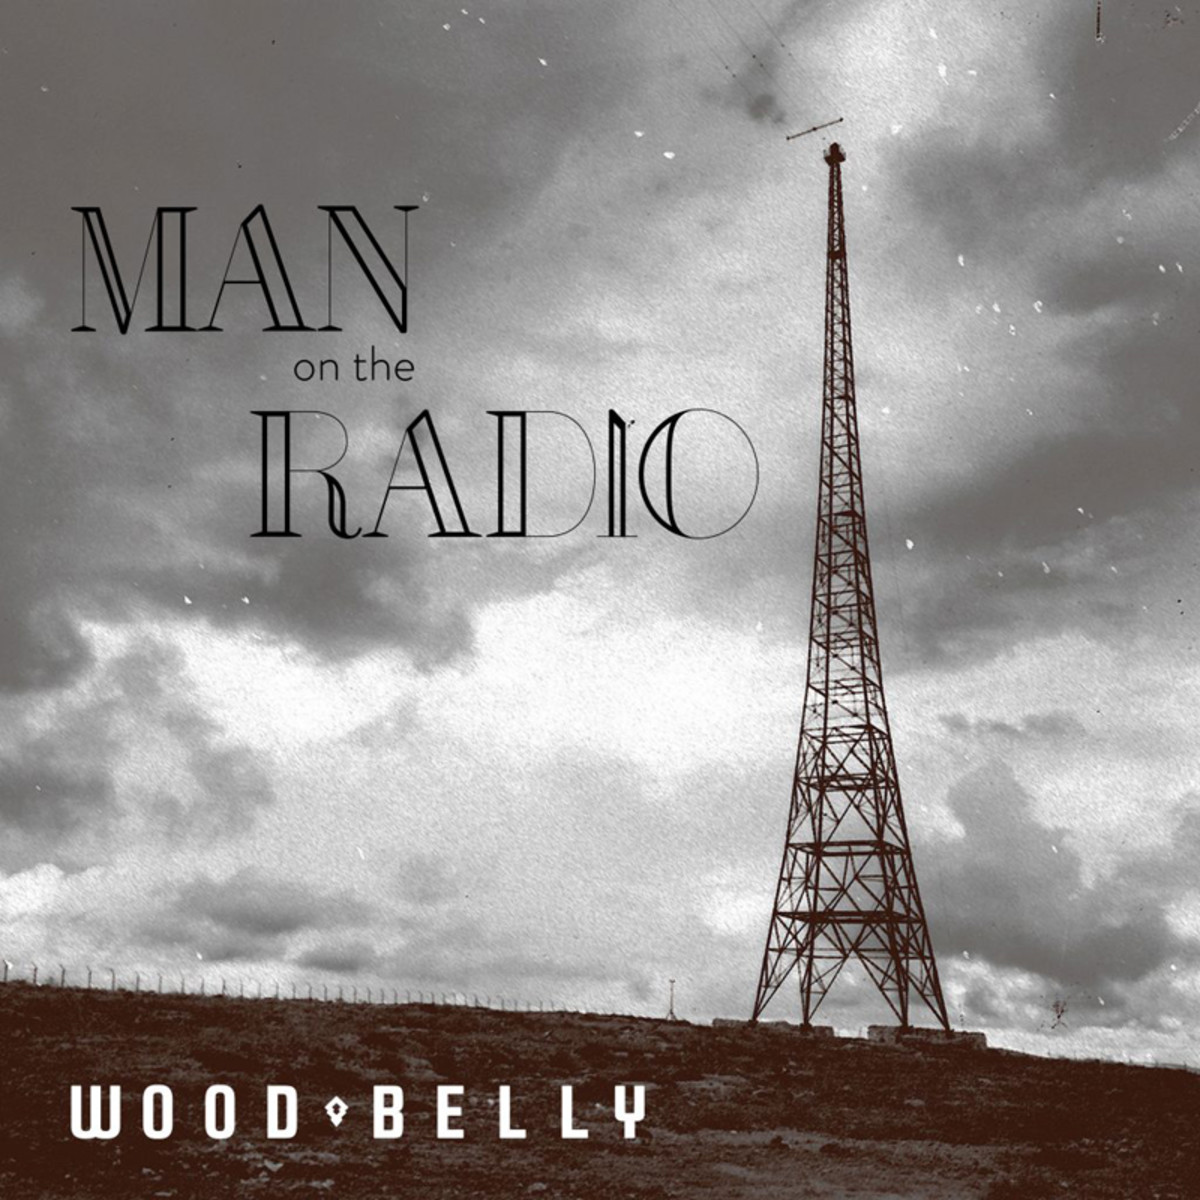 Wood-Belly-Man-On-The-Radio-Artwork-1024x1024